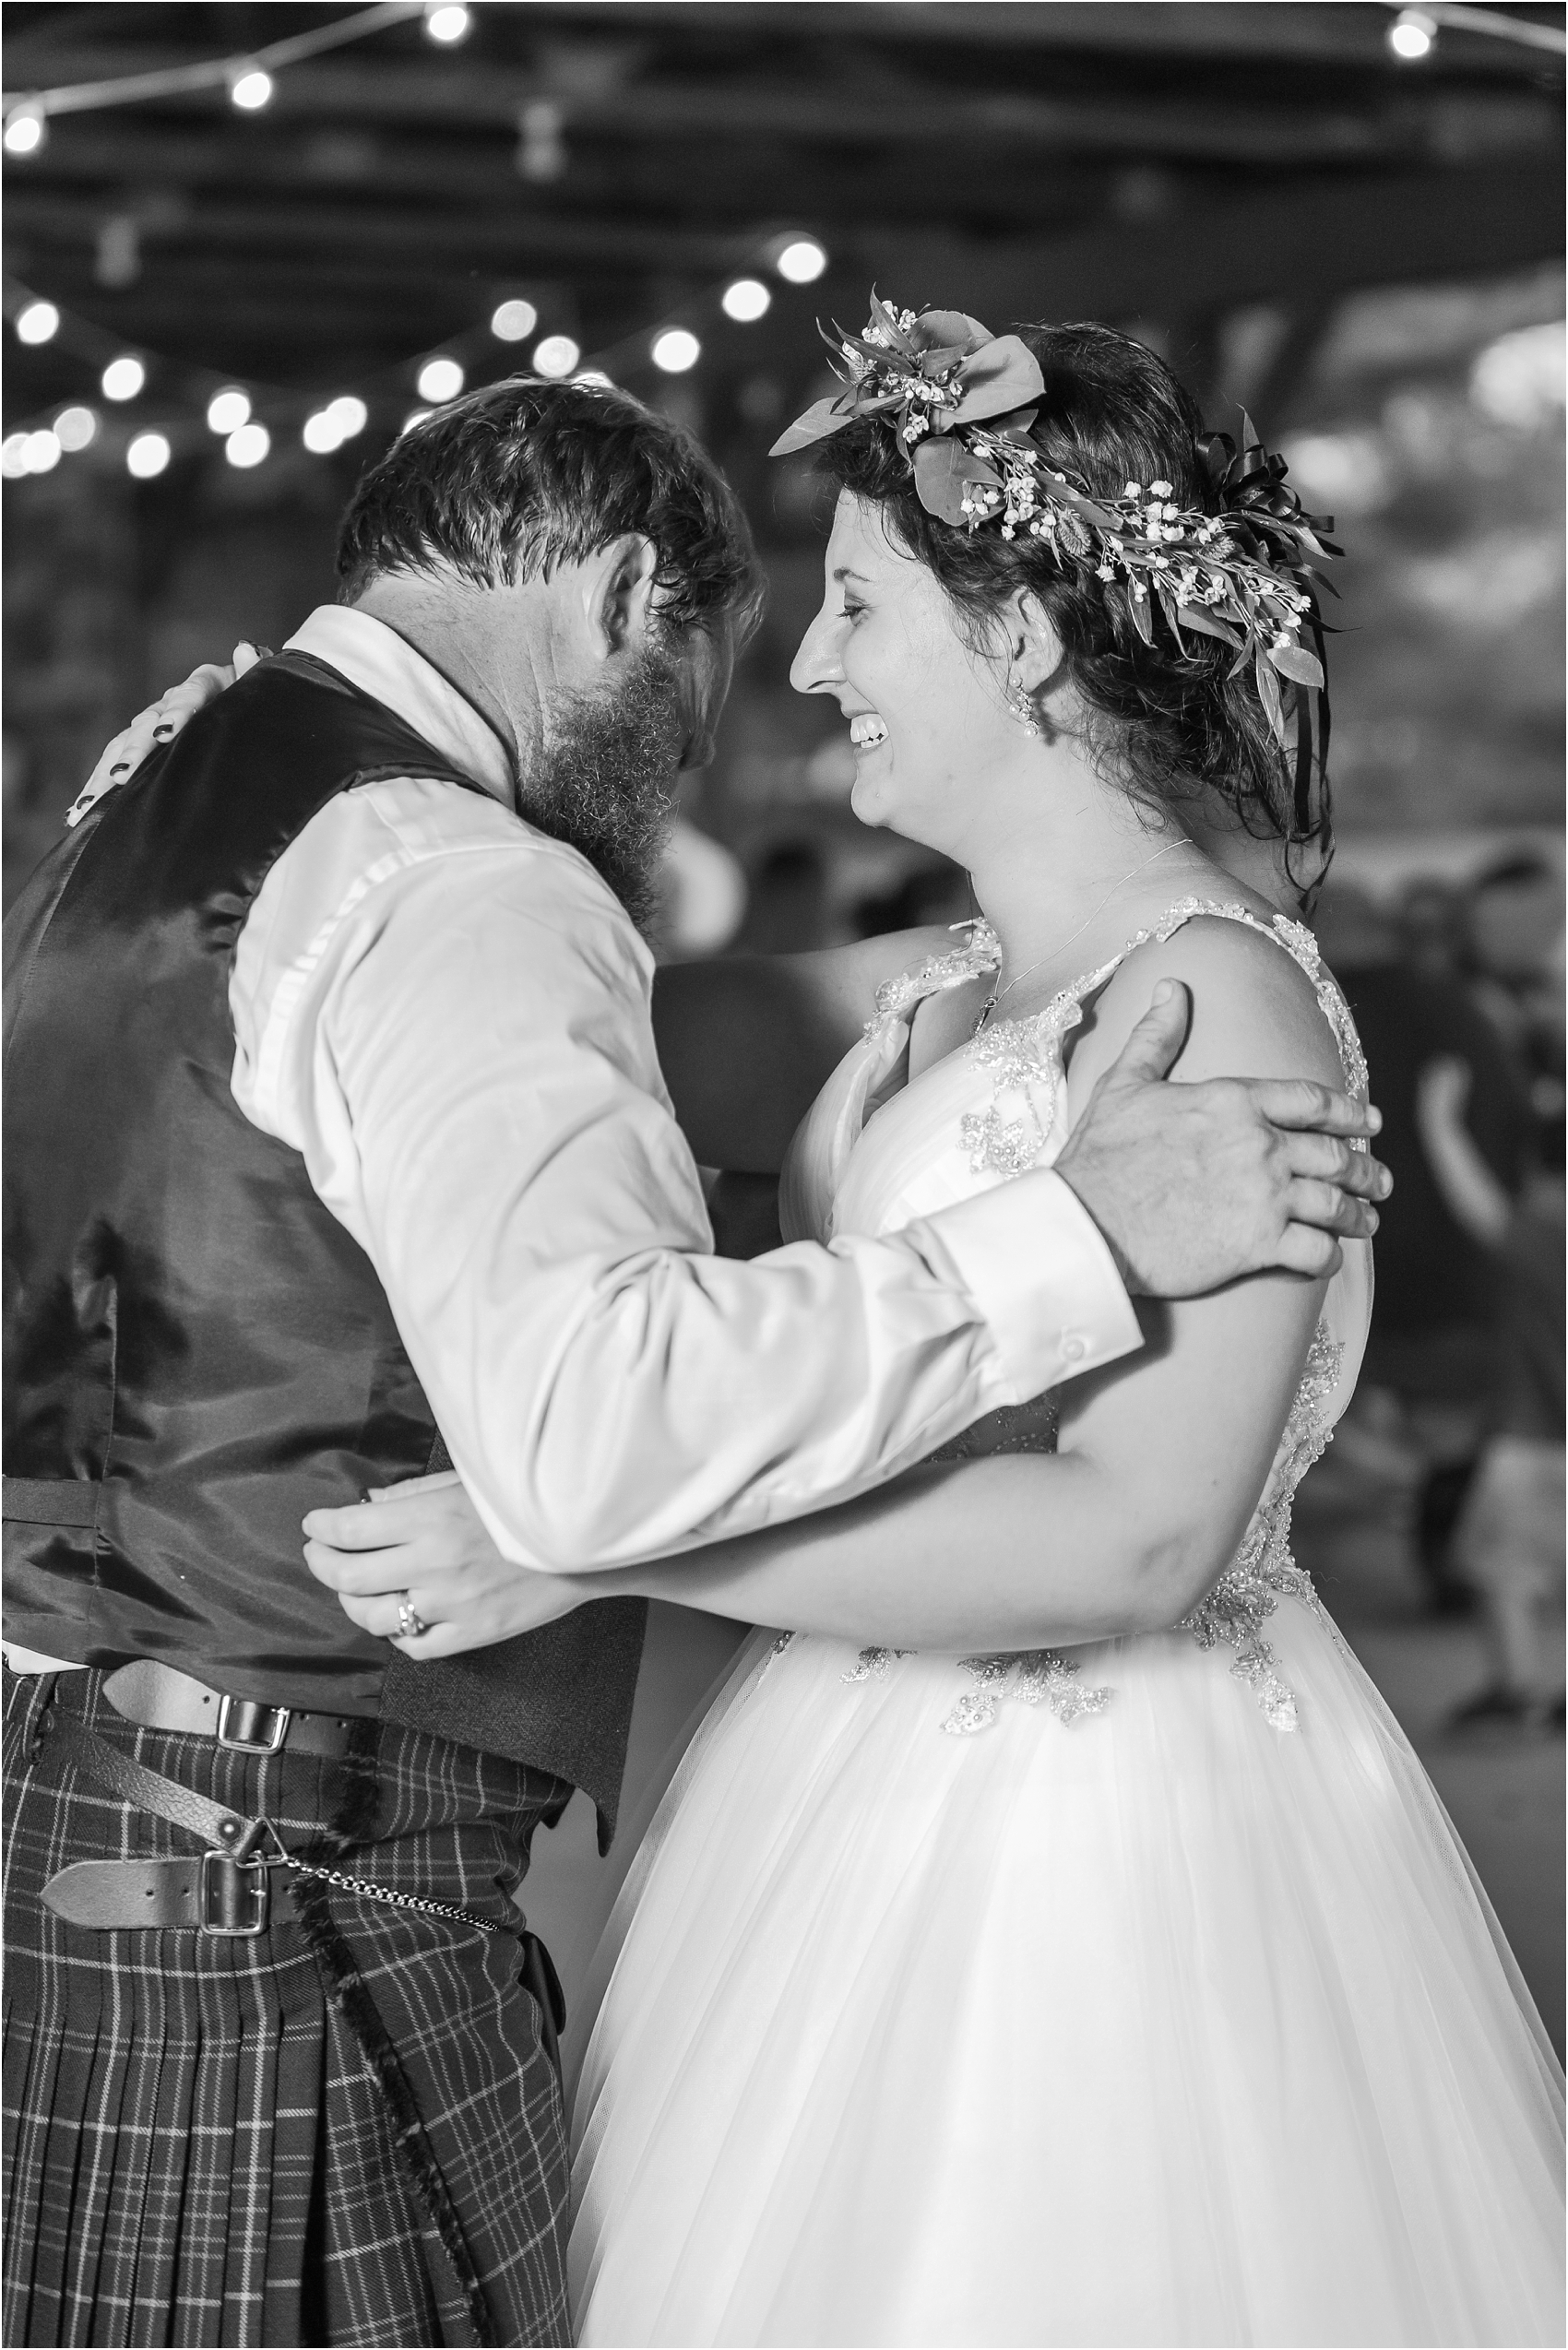 scottish-inspired-wedding-photos-in-the-country-in-port-sanilac-michigan-by-courtney-carolyn-photography_0064.jpg